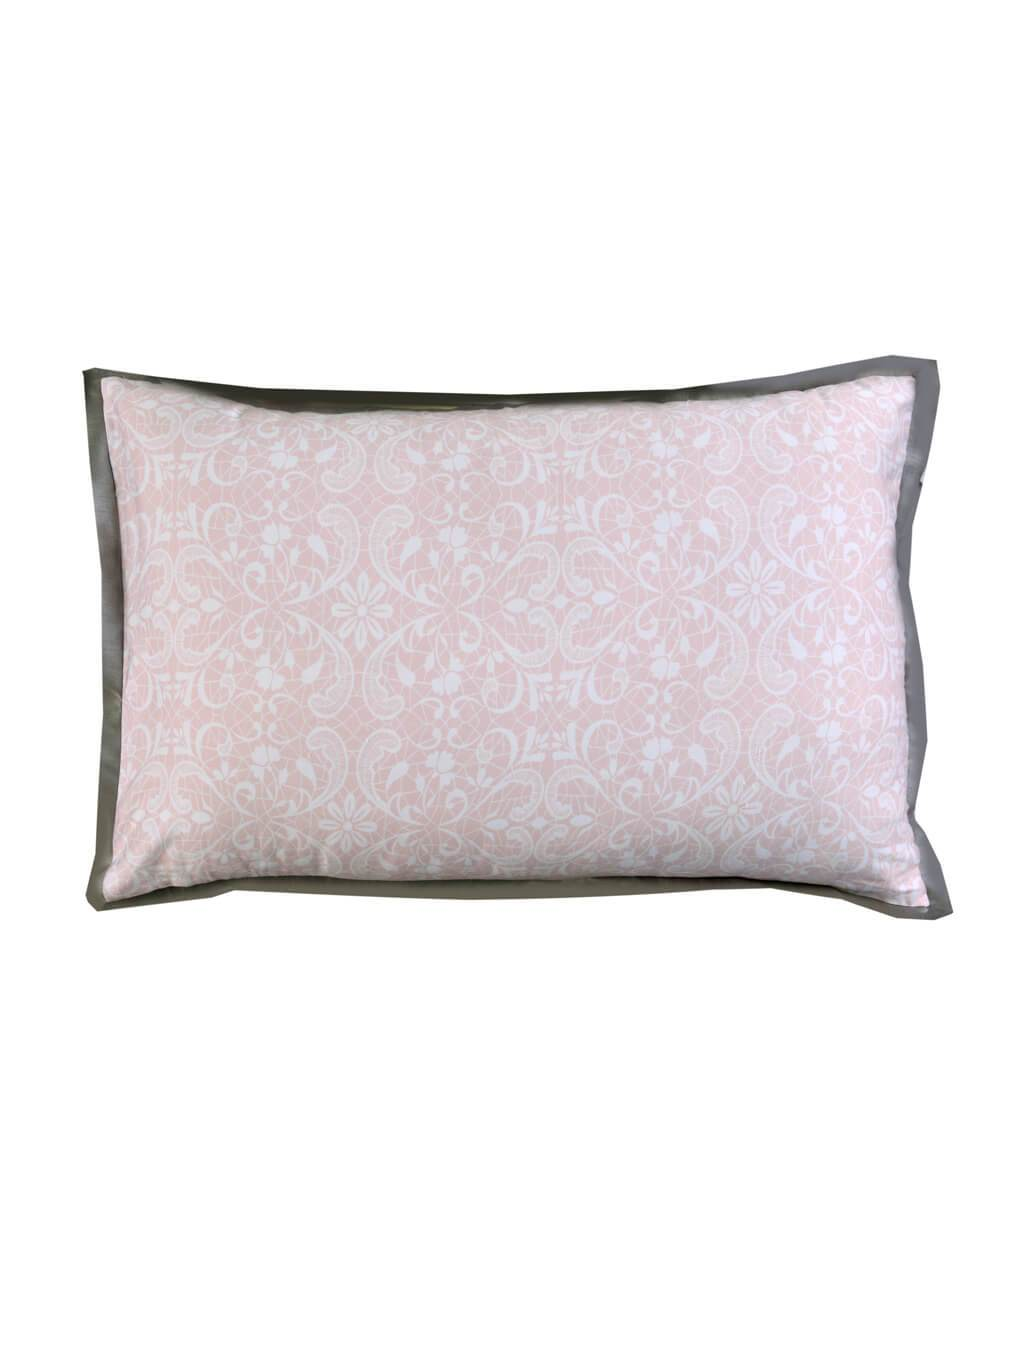 Gracious Lace Pillow Cover Luxury Bedding HOMBEDGOL